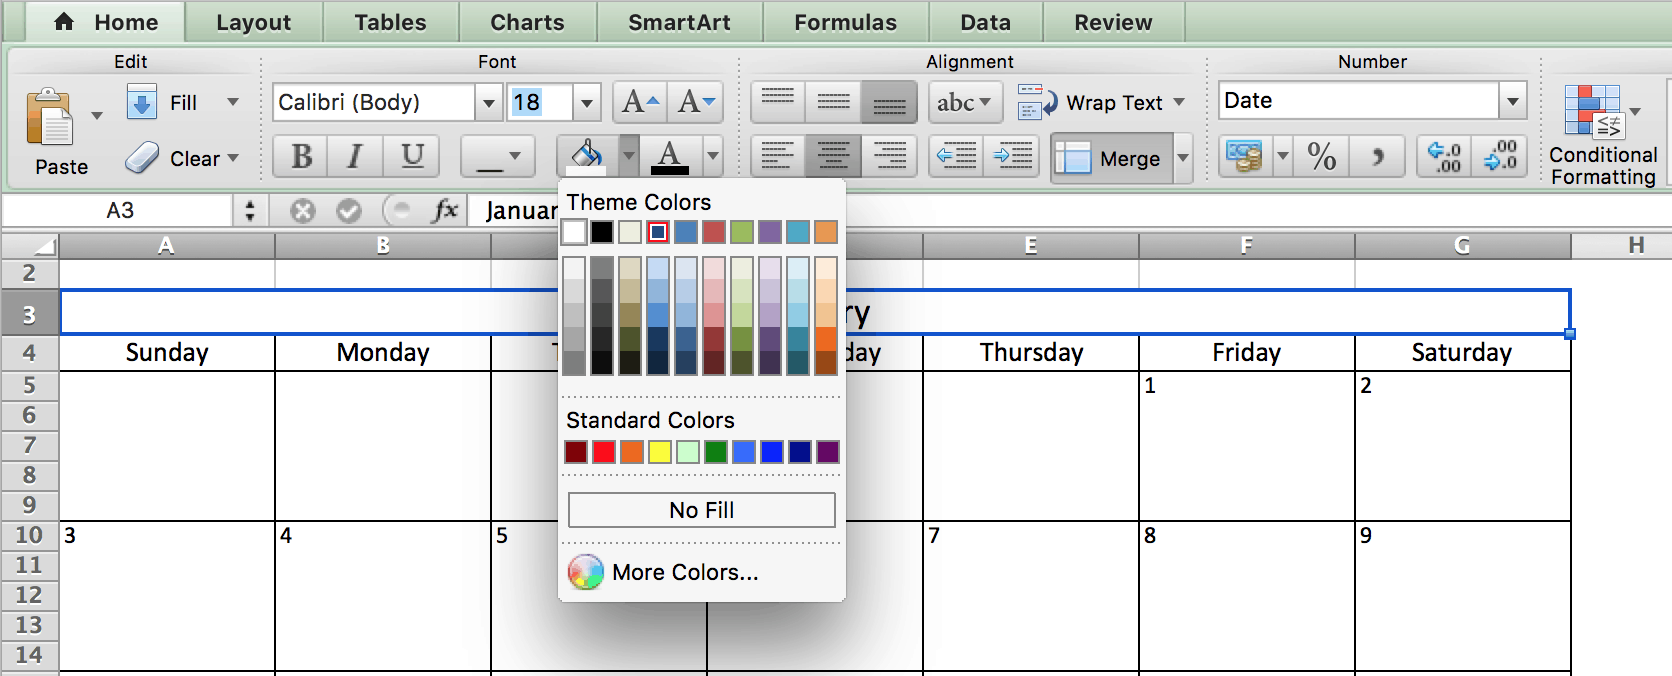 Ediblewildsus  Stunning Make A  Calendar In Excel Includes Free Template With Great Choosing Colors  Calendar In Excel With Extraordinary Write Formula In Excel Also Excel File Reader In Addition Spell Check For Excel And Install Excel  As Well As Statistical Formulas In Excel Additionally Excel Dashboard Design From Smartsheetcom With Ediblewildsus  Great Make A  Calendar In Excel Includes Free Template With Extraordinary Choosing Colors  Calendar In Excel And Stunning Write Formula In Excel Also Excel File Reader In Addition Spell Check For Excel From Smartsheetcom